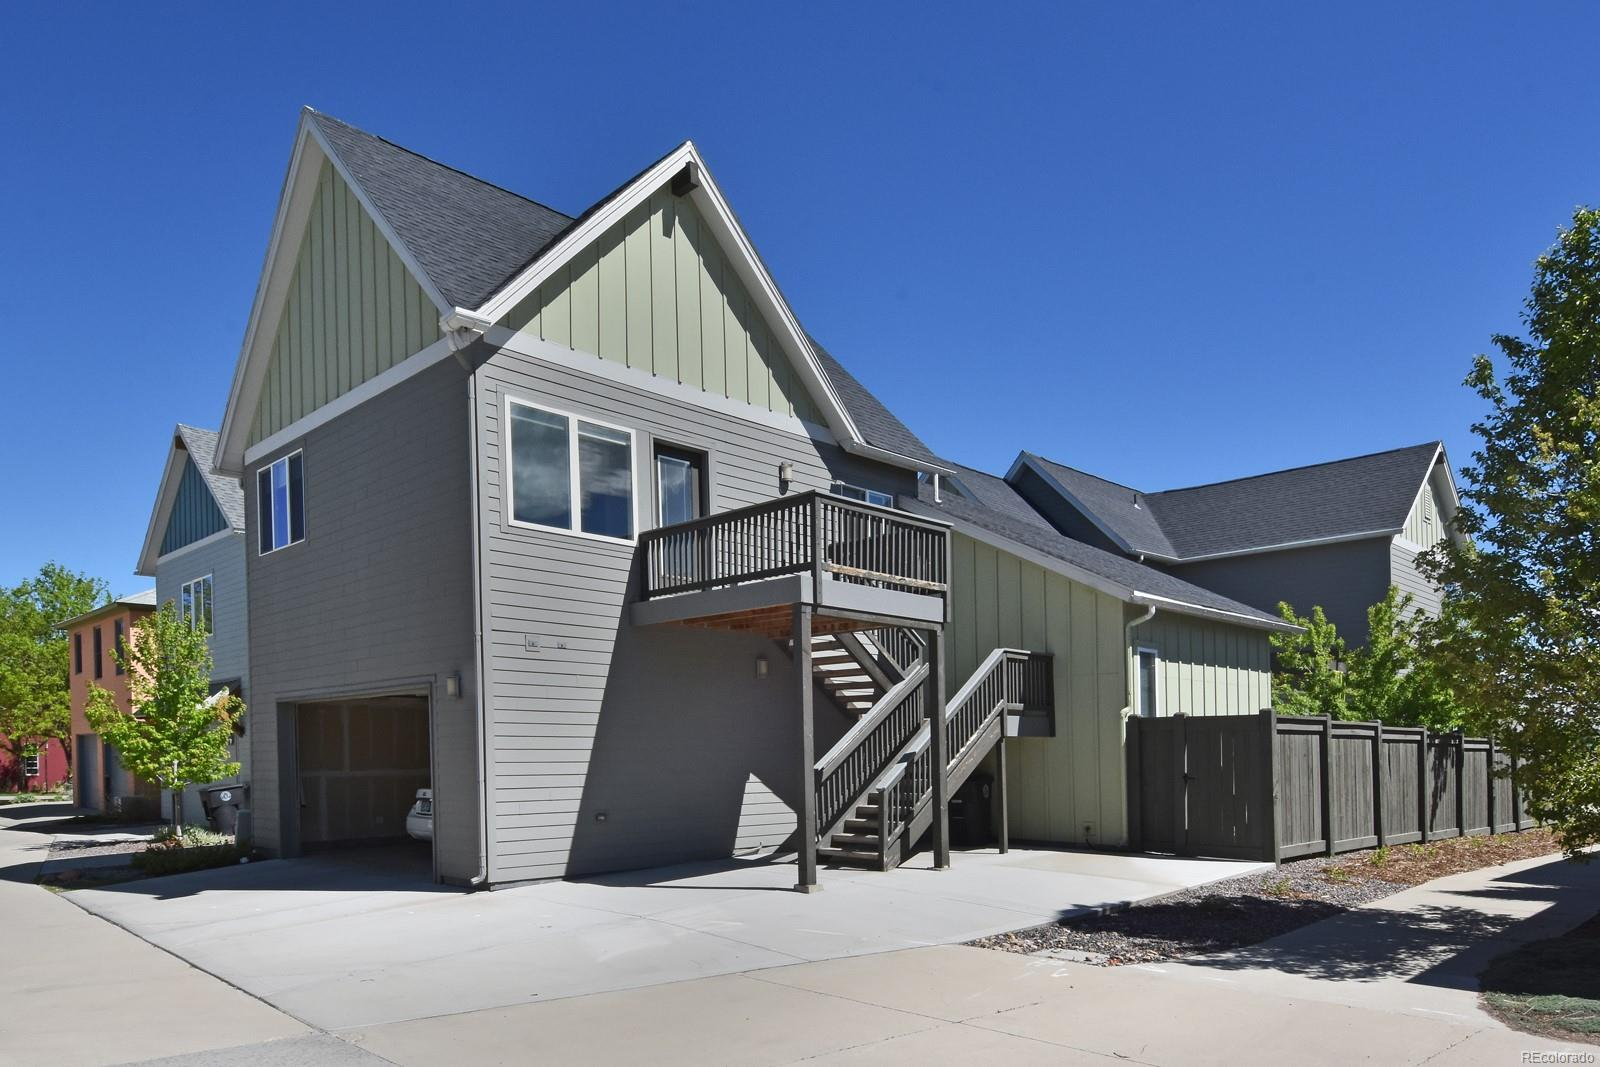 Carriage House provides great rental income